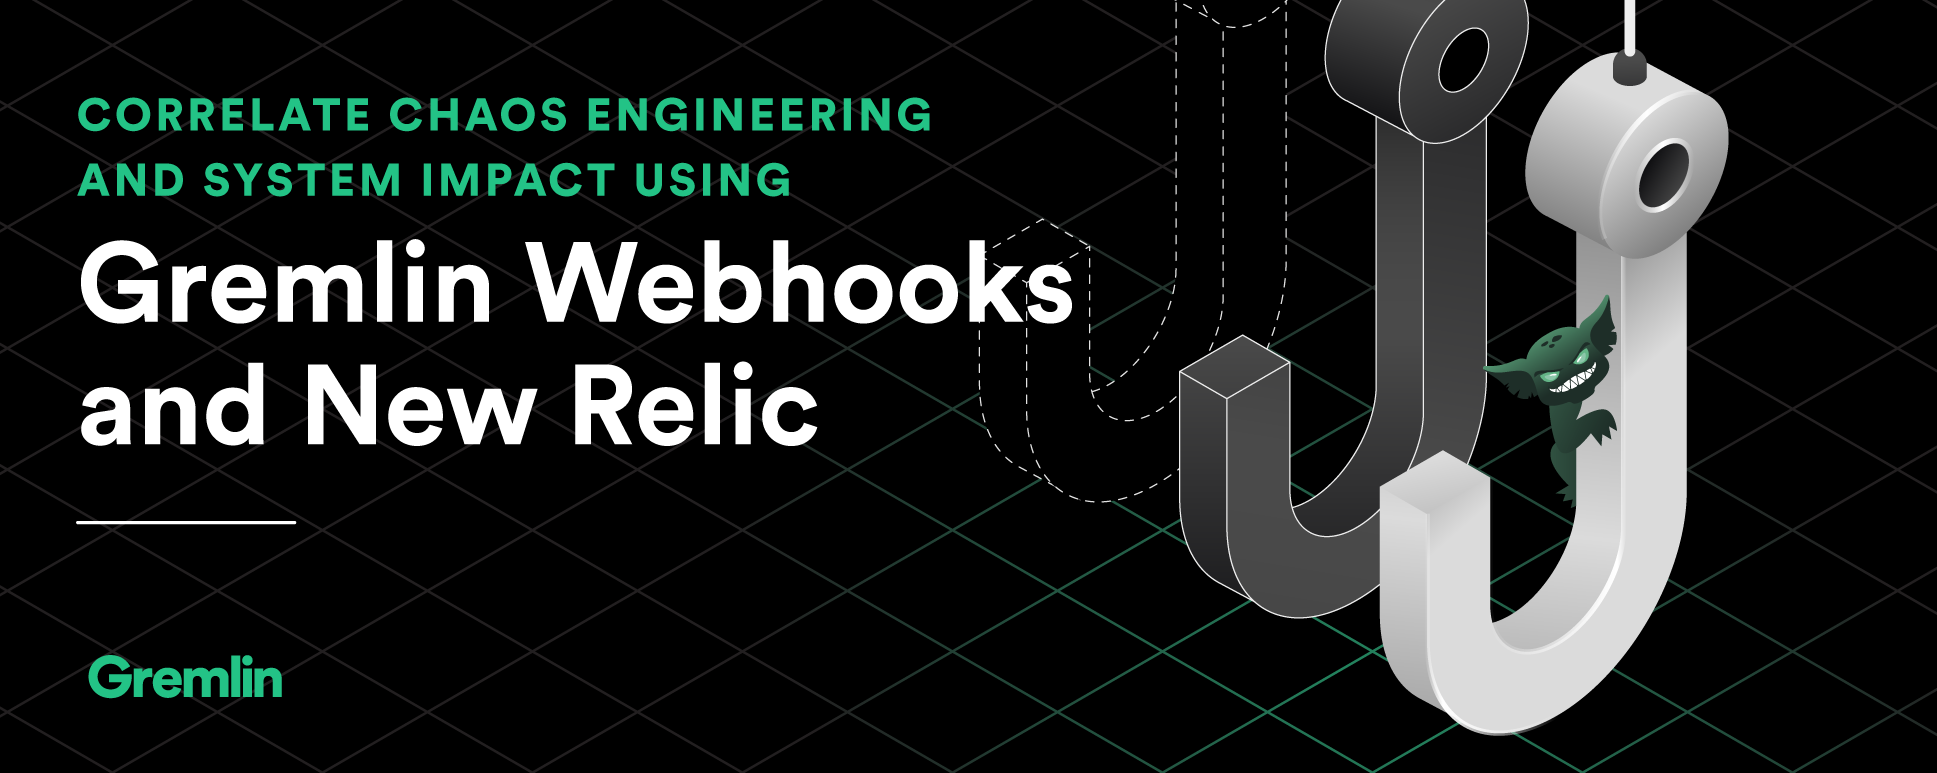 Correlate Chaos Engineering and system impact using Gremlin webhooks and New Relic